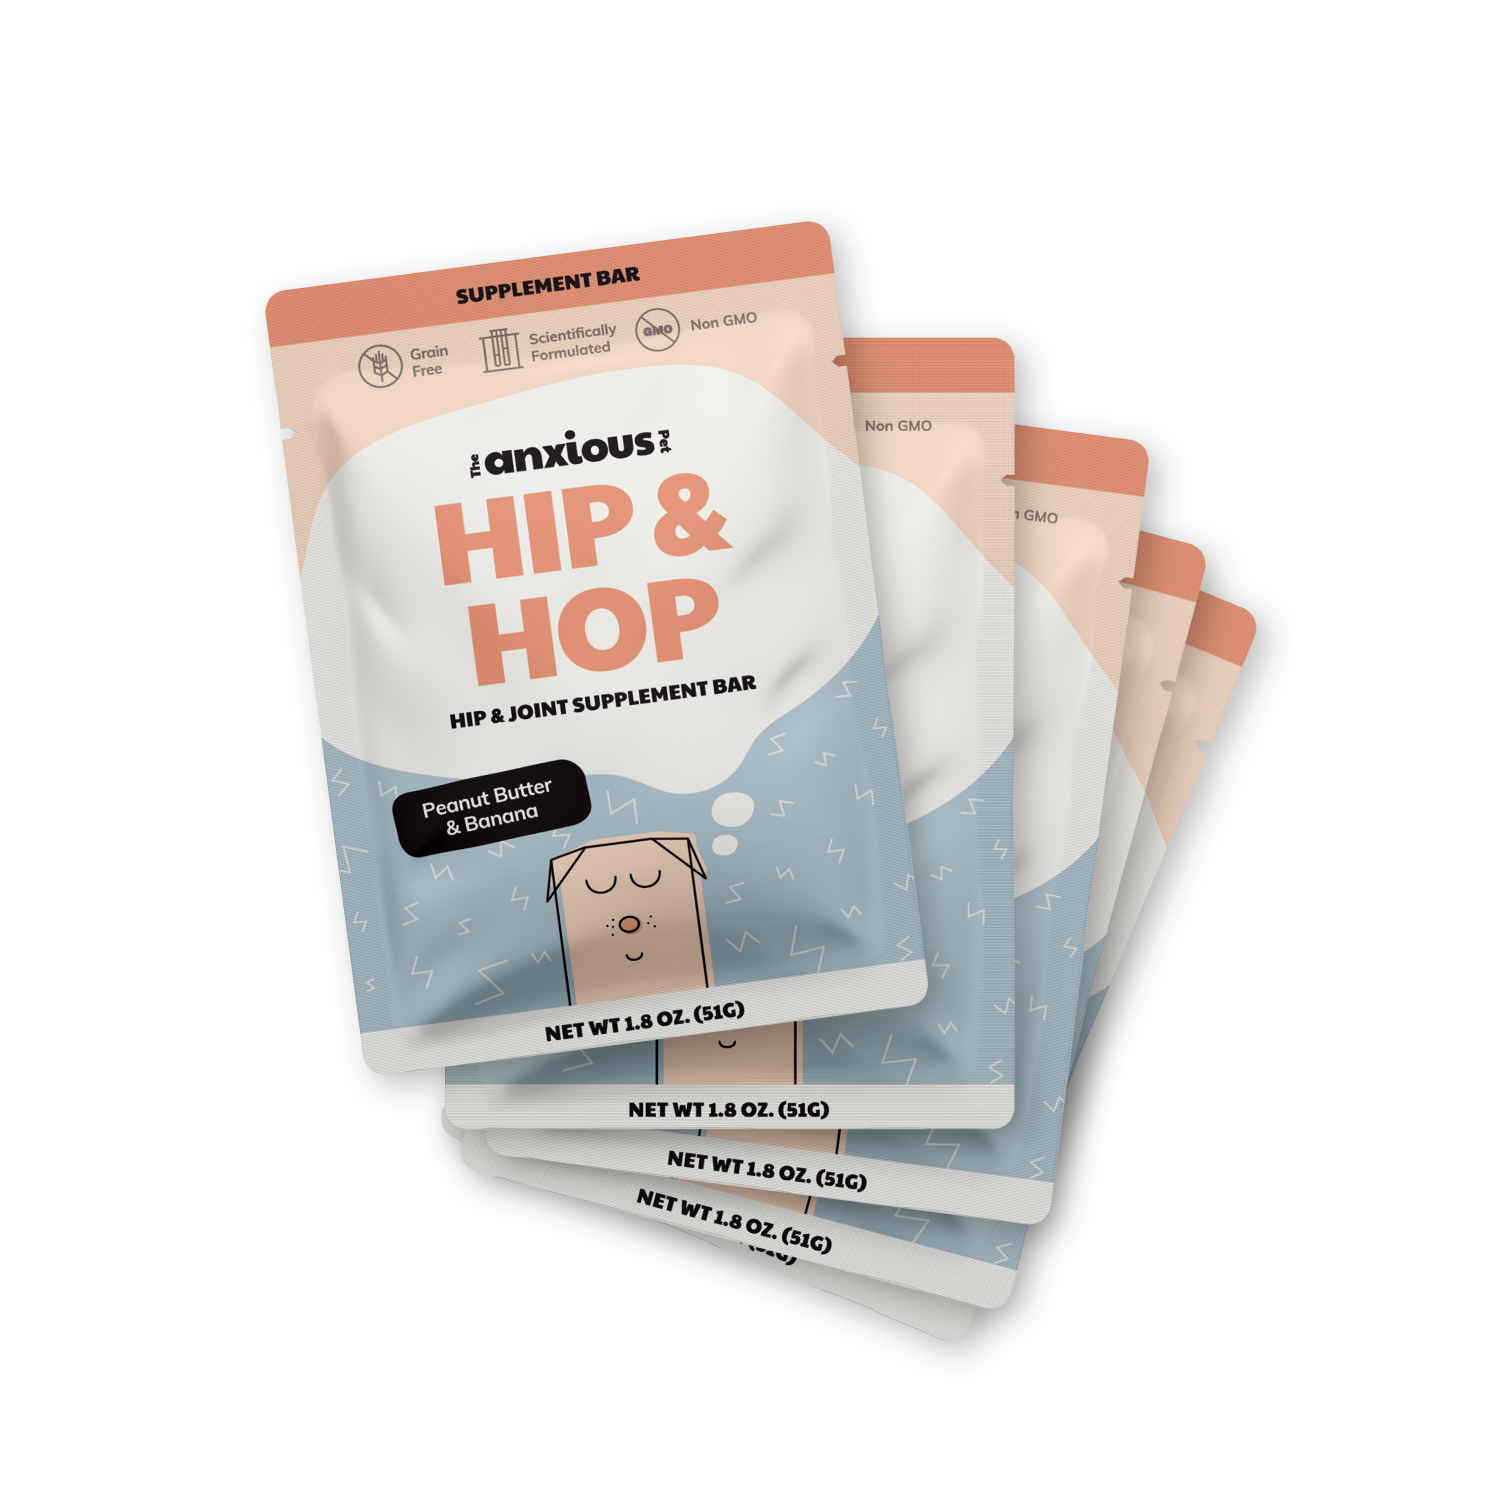 Hip & Hop Supplement Bars